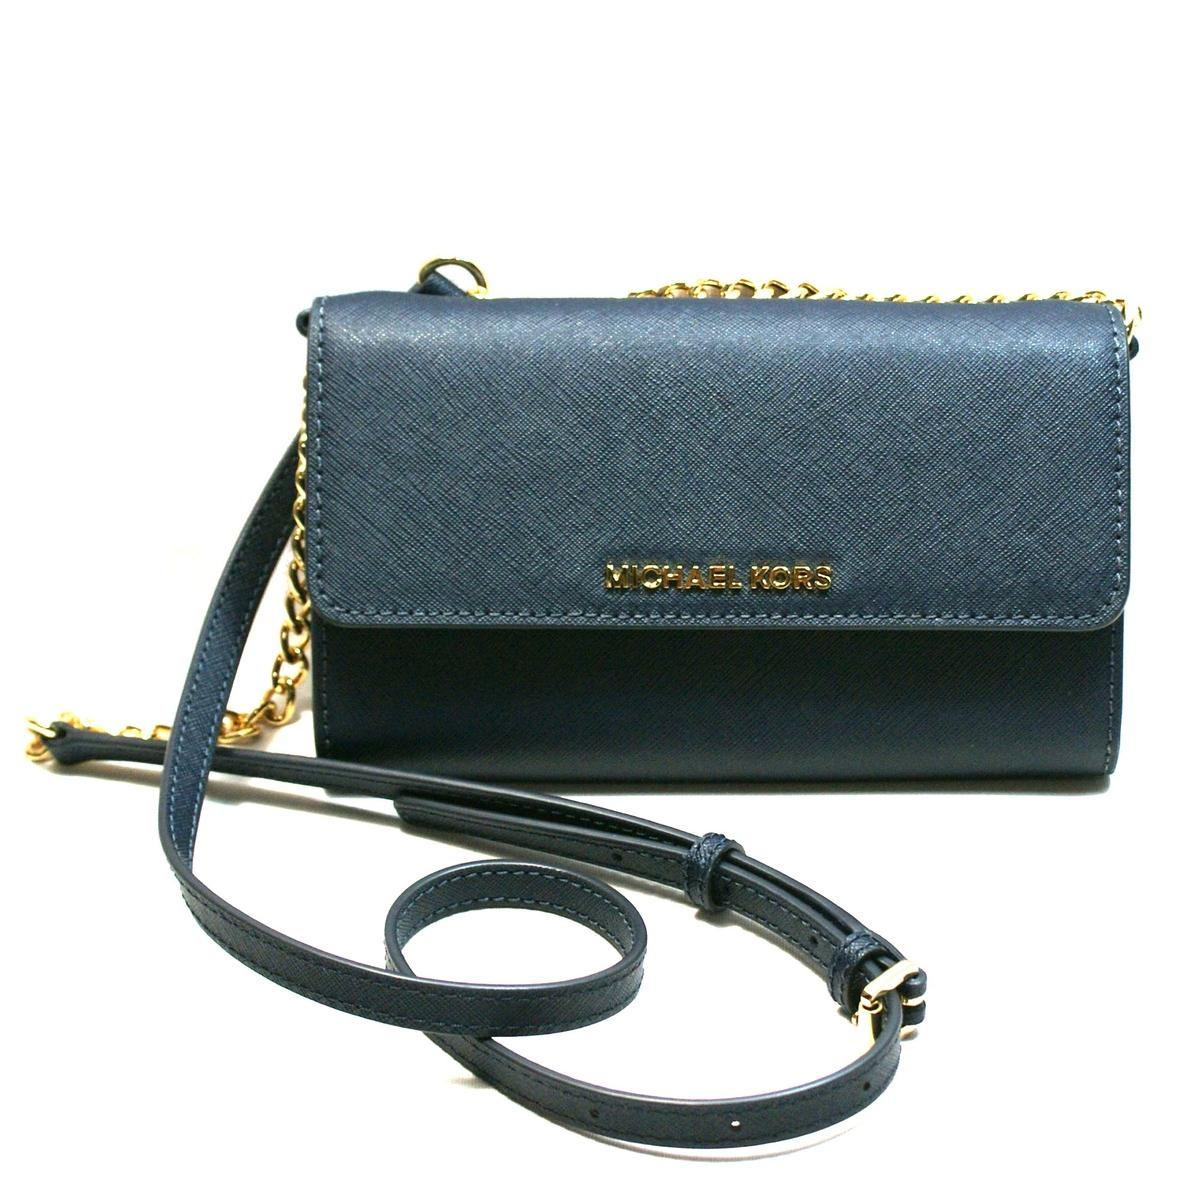 08f799f4164c Home · Michael Kors · Jet Set Travel Leather Wallet/ Clutch/ Crossbody bag  Admiral. CLICK THUMBNAIL TO ZOOM. Found ...